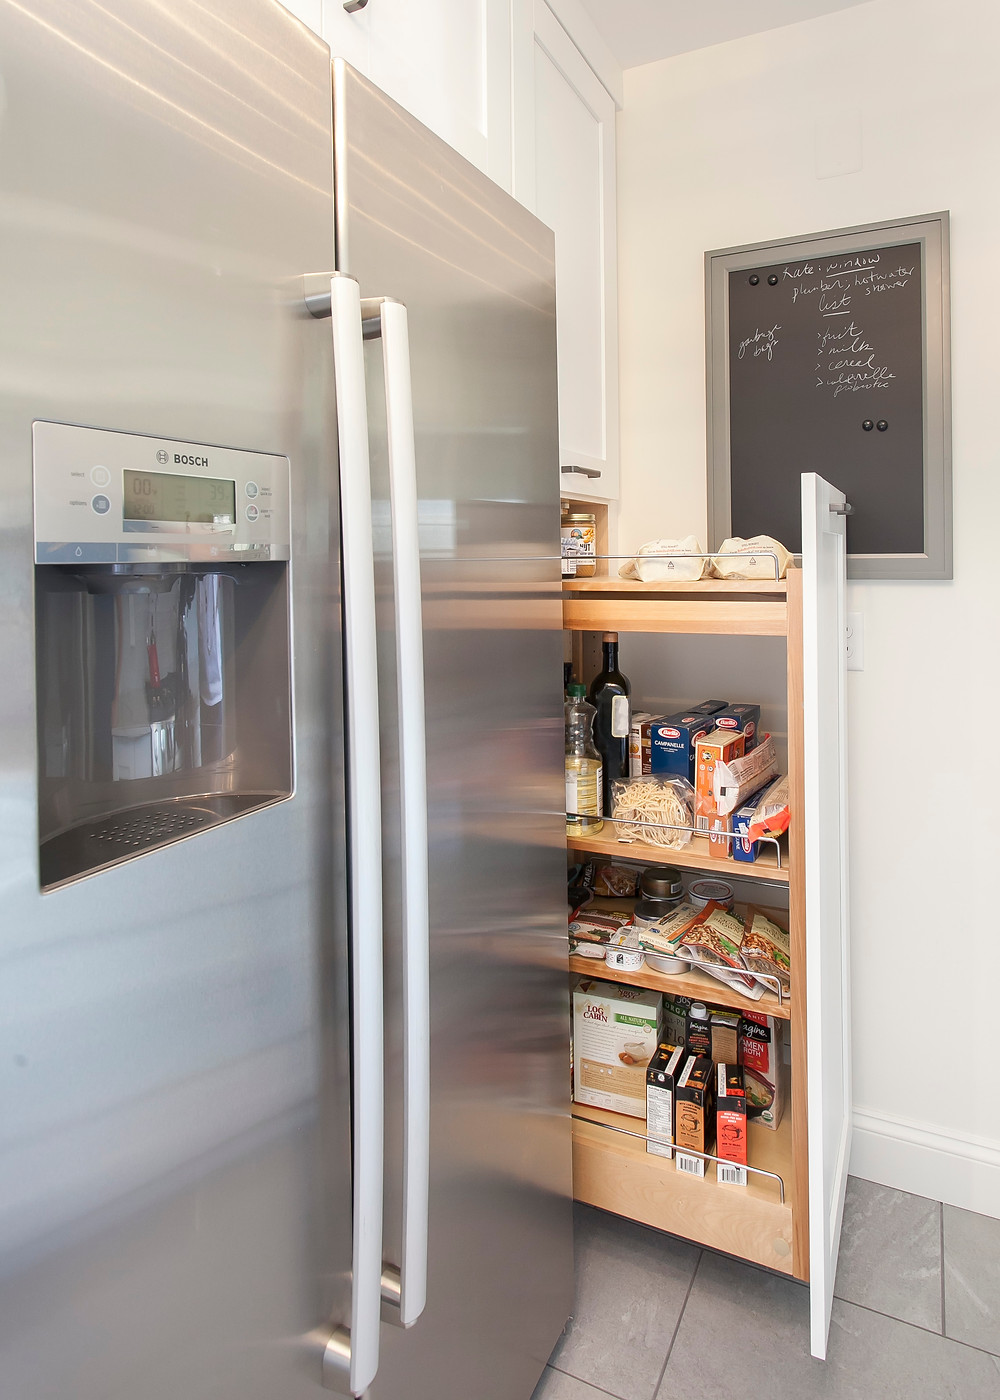 Small kitchen refrigerator and pantry cabinet.